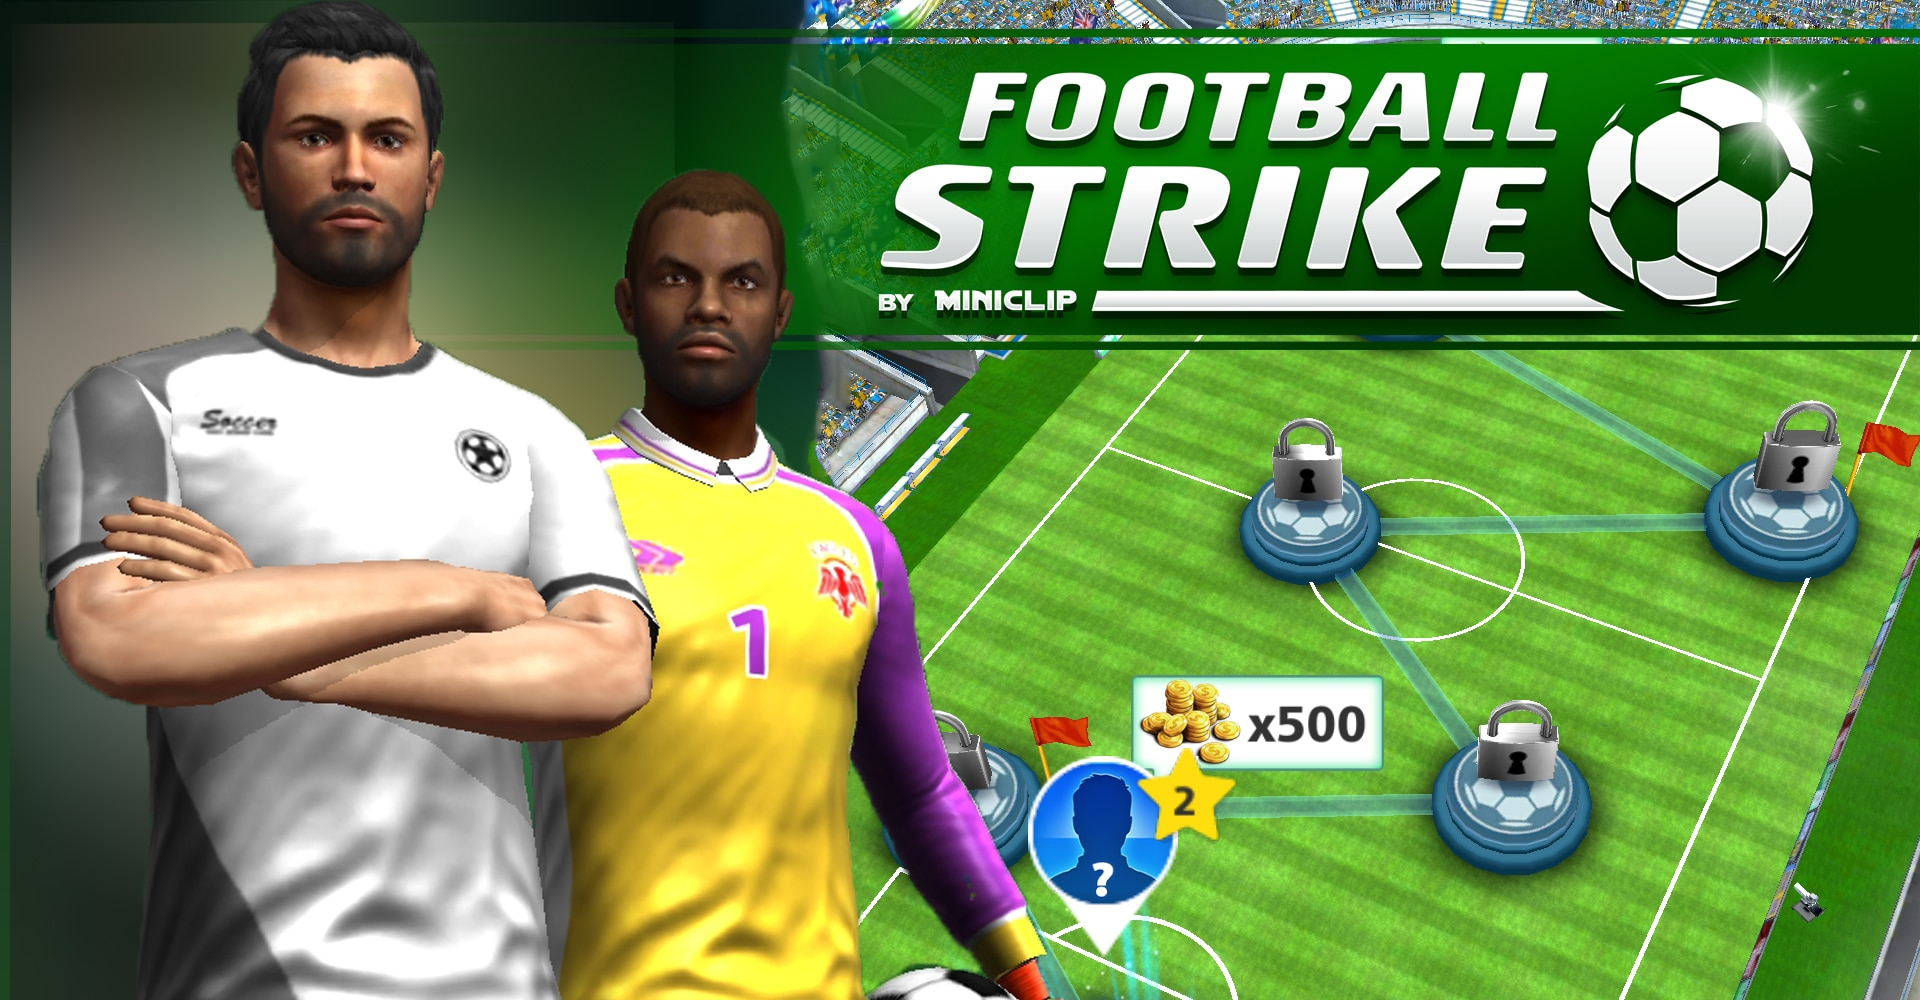 Download FOOTBALL STRIKE APK - For Android/iOS 15